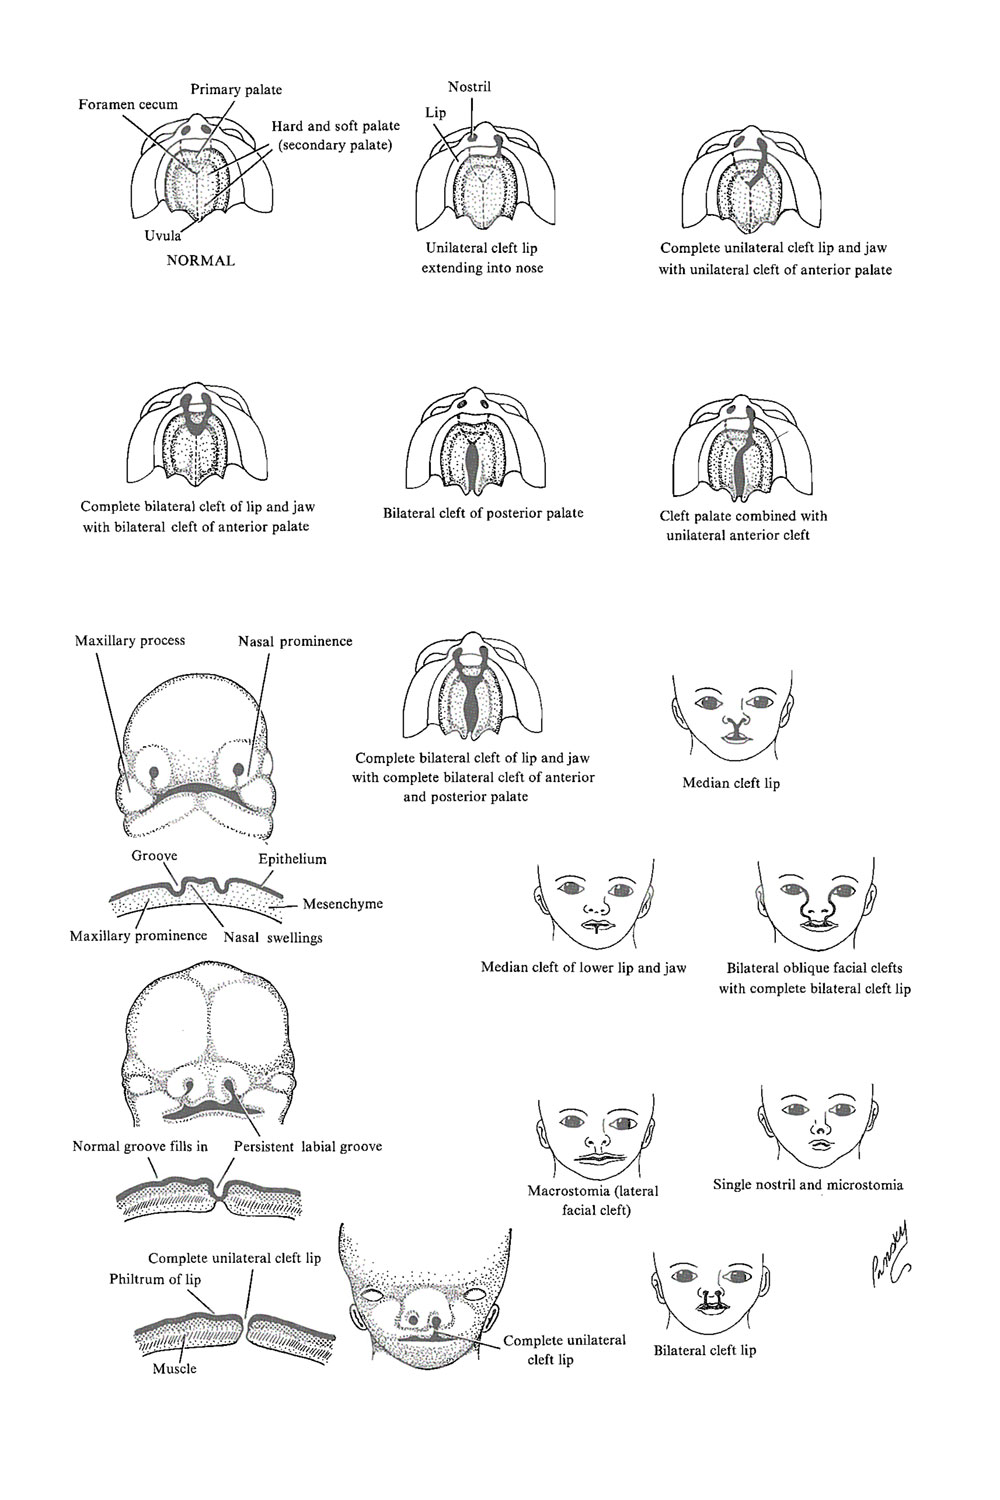 Chapter 56. Congenital Malformations of The Lip and Palate - Review ...